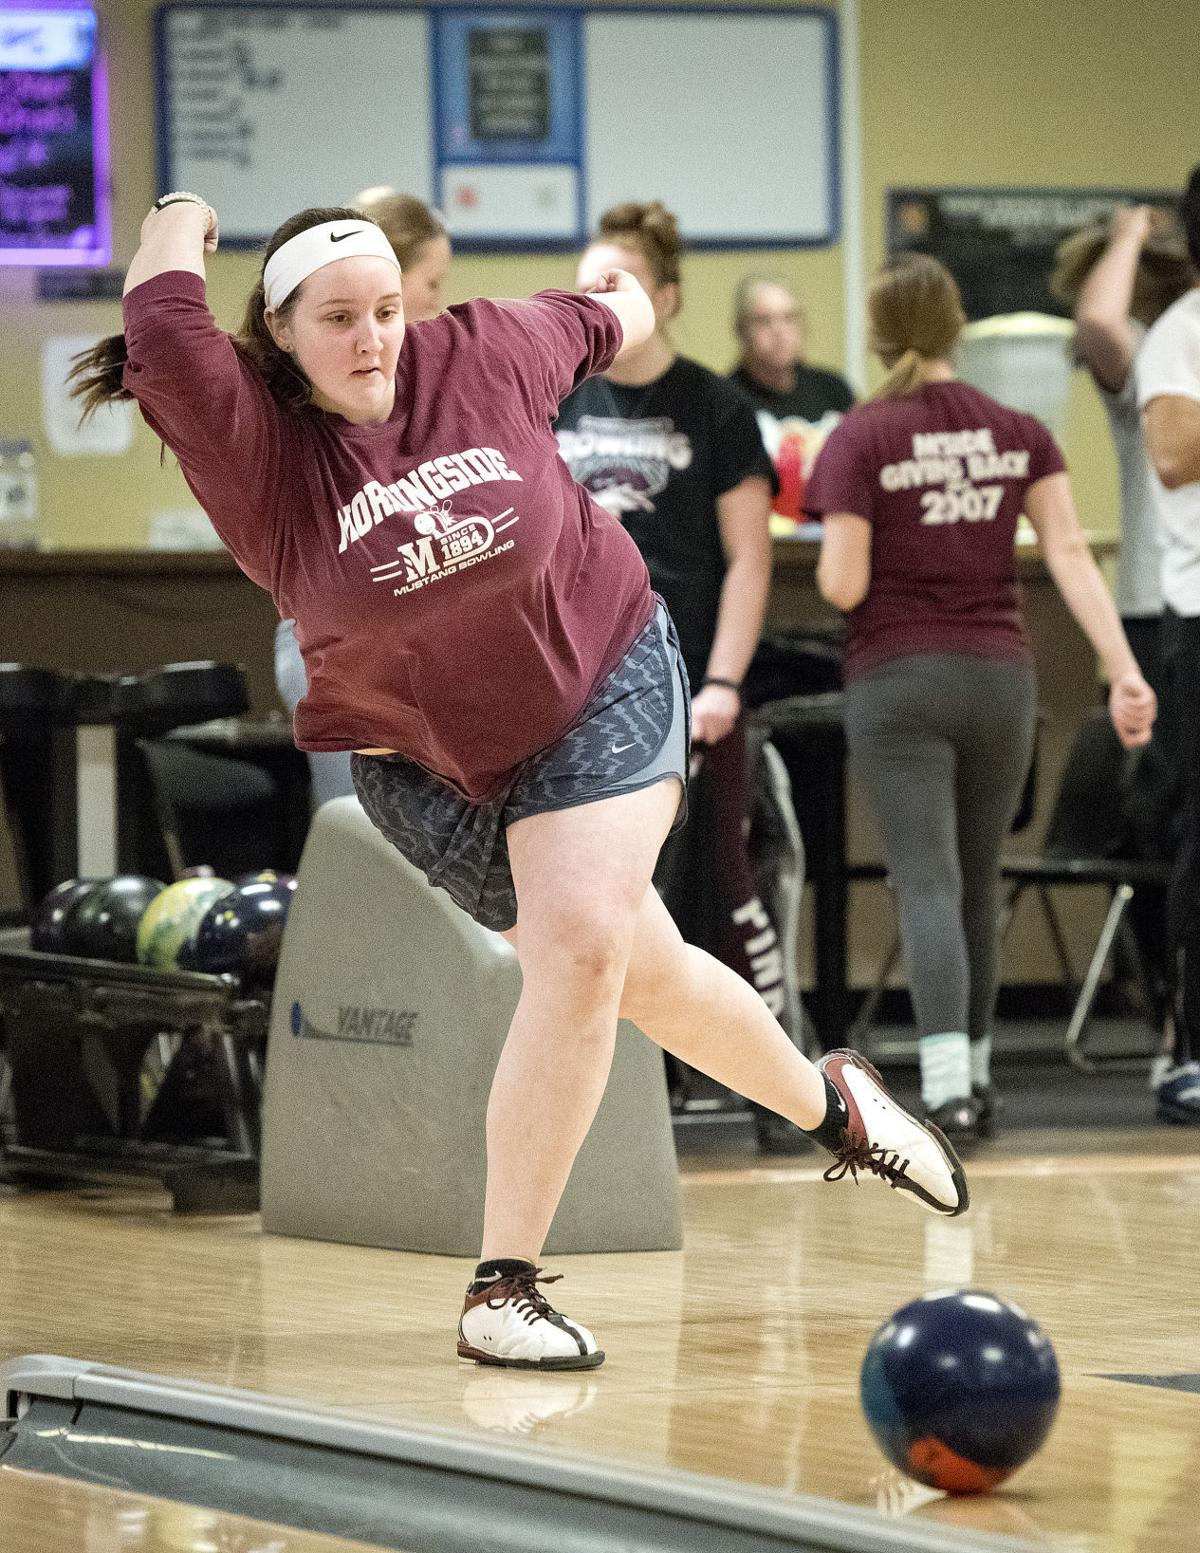 6879cee9a6 Sport of bowling catches fire at Morningside College | Siouxland Life |  siouxcityjournal.com